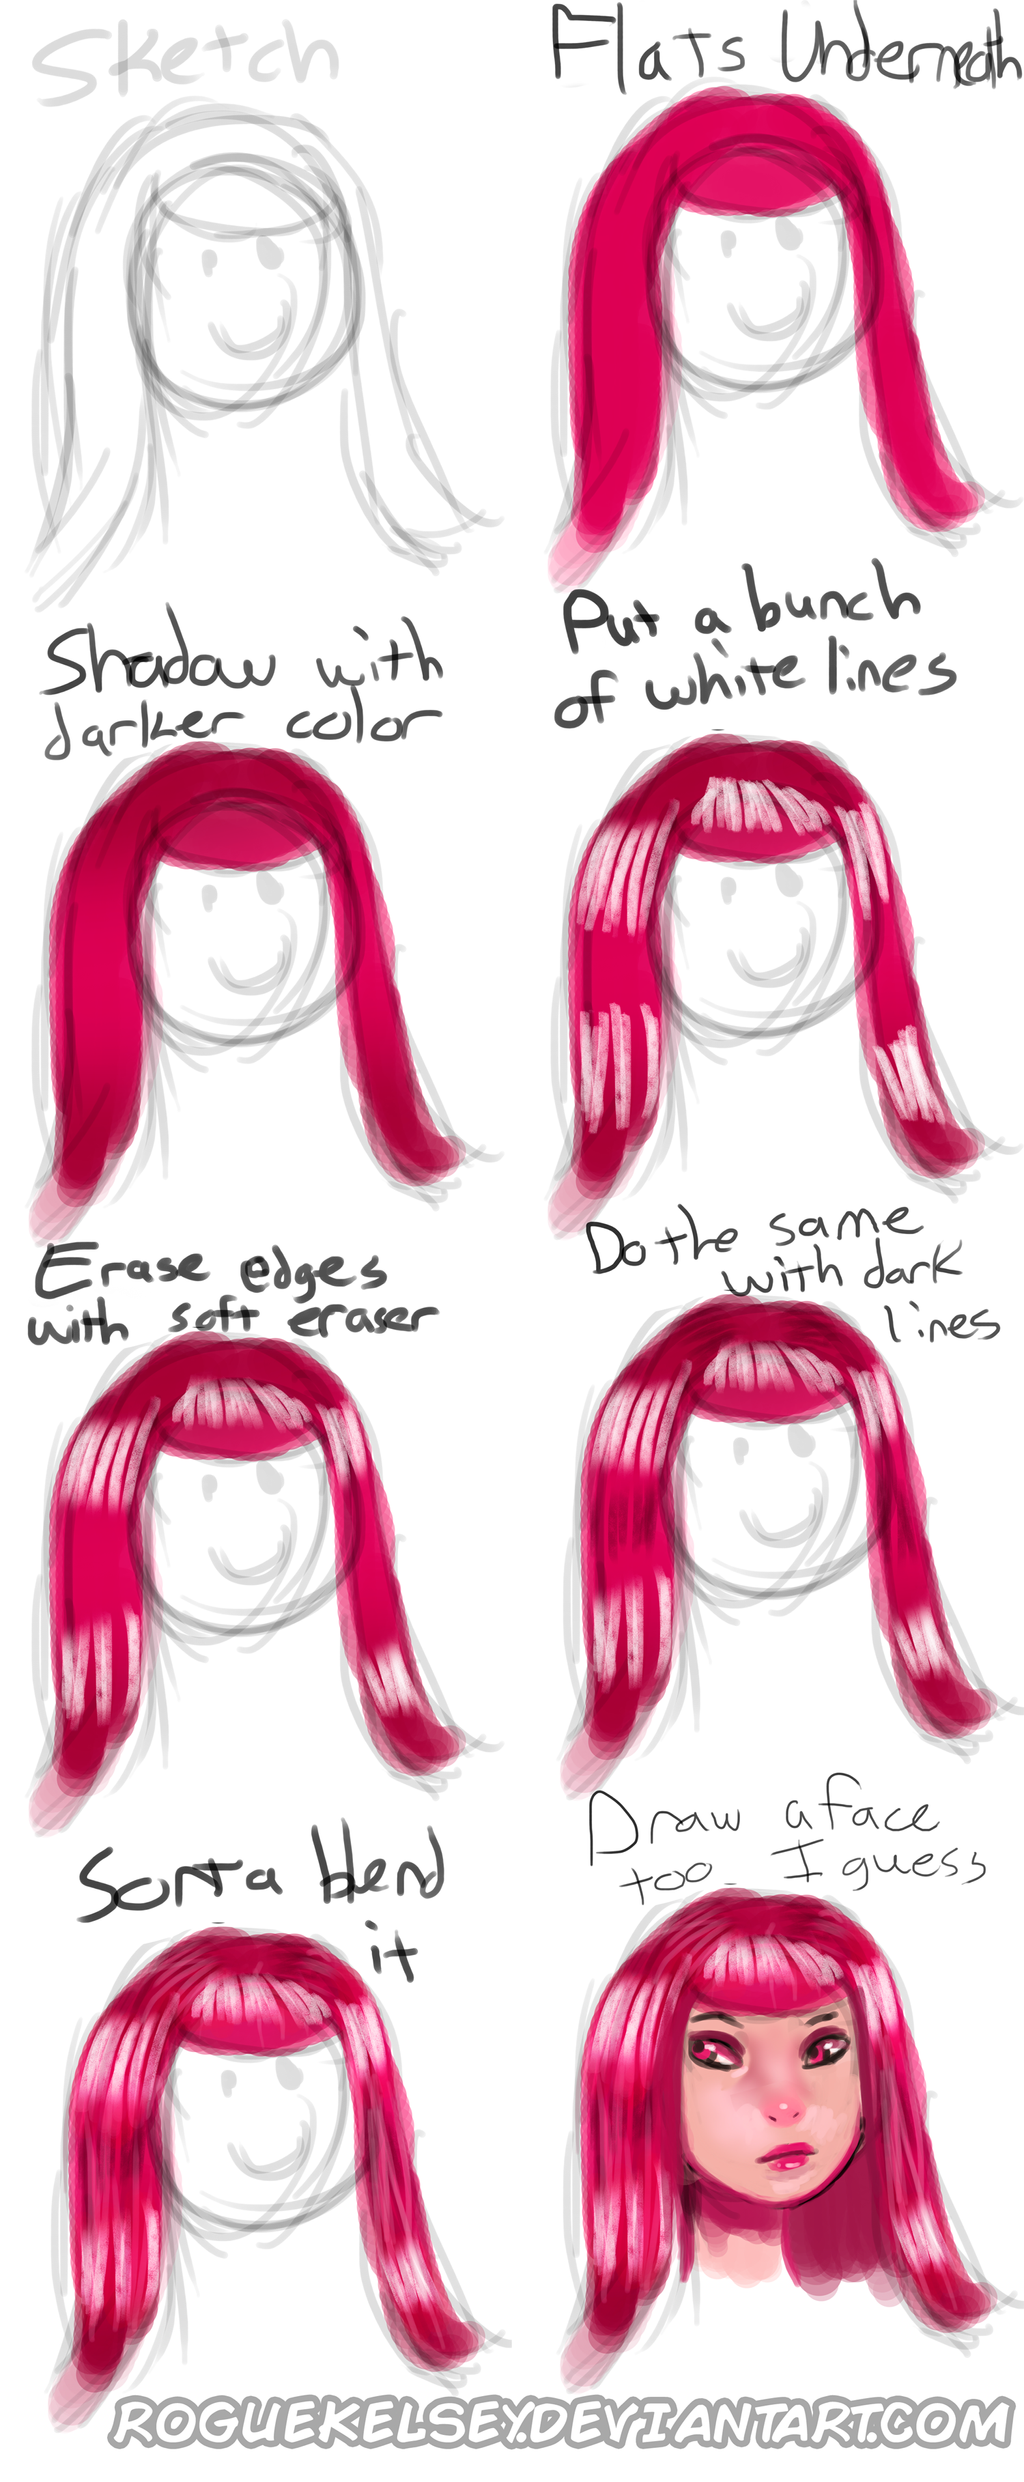 Quick Hair Tutorial by ROGUEKELSEY